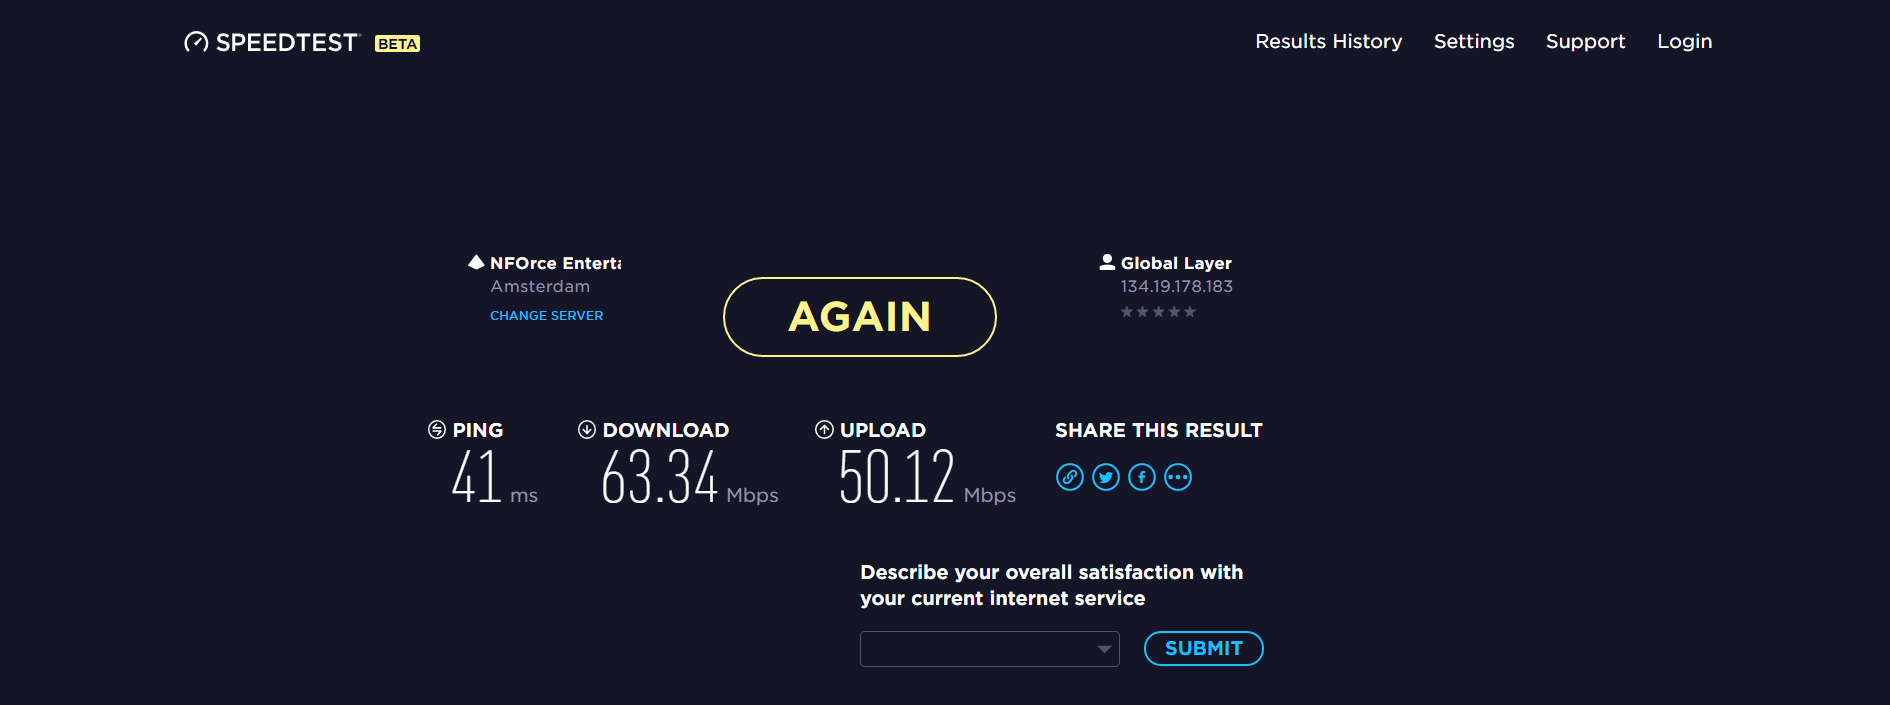 HideMyAss upload and download speed